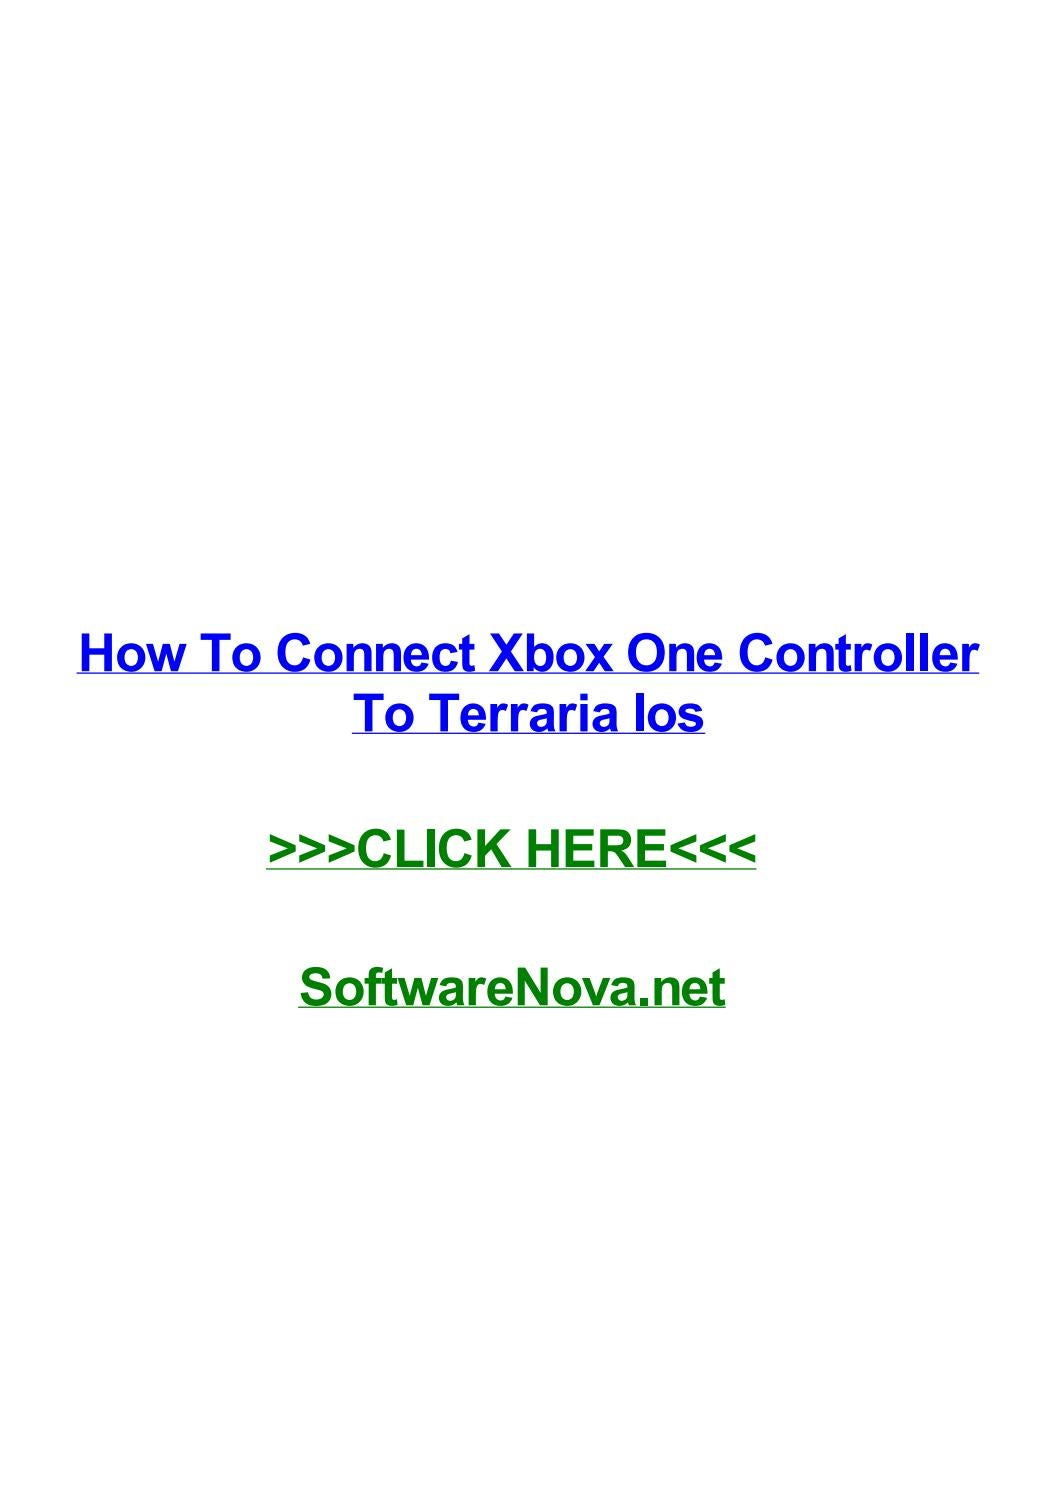 How to connect xbox one controller to terraria ios by